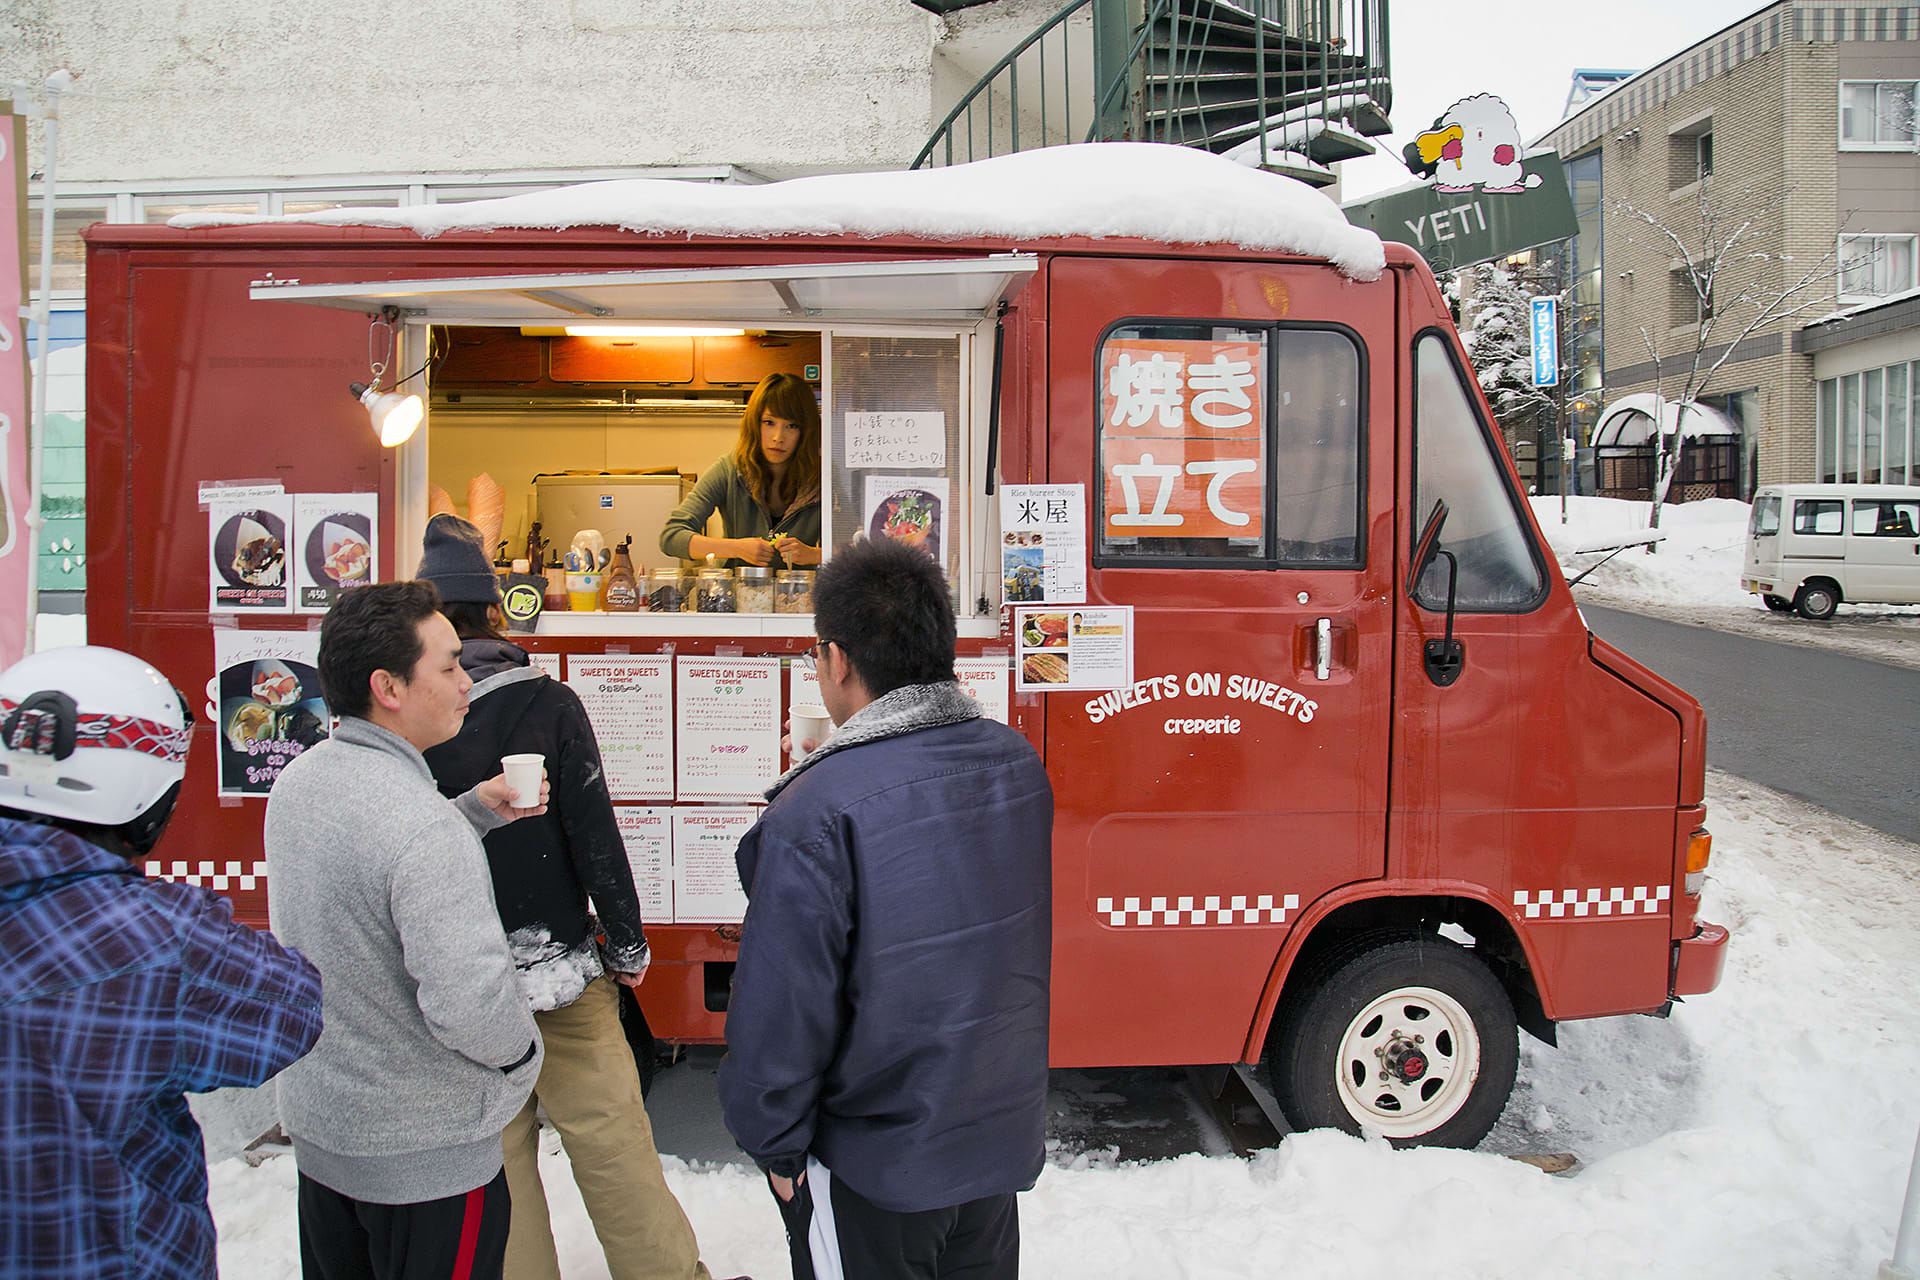 Food-truck in connection with the lift system.